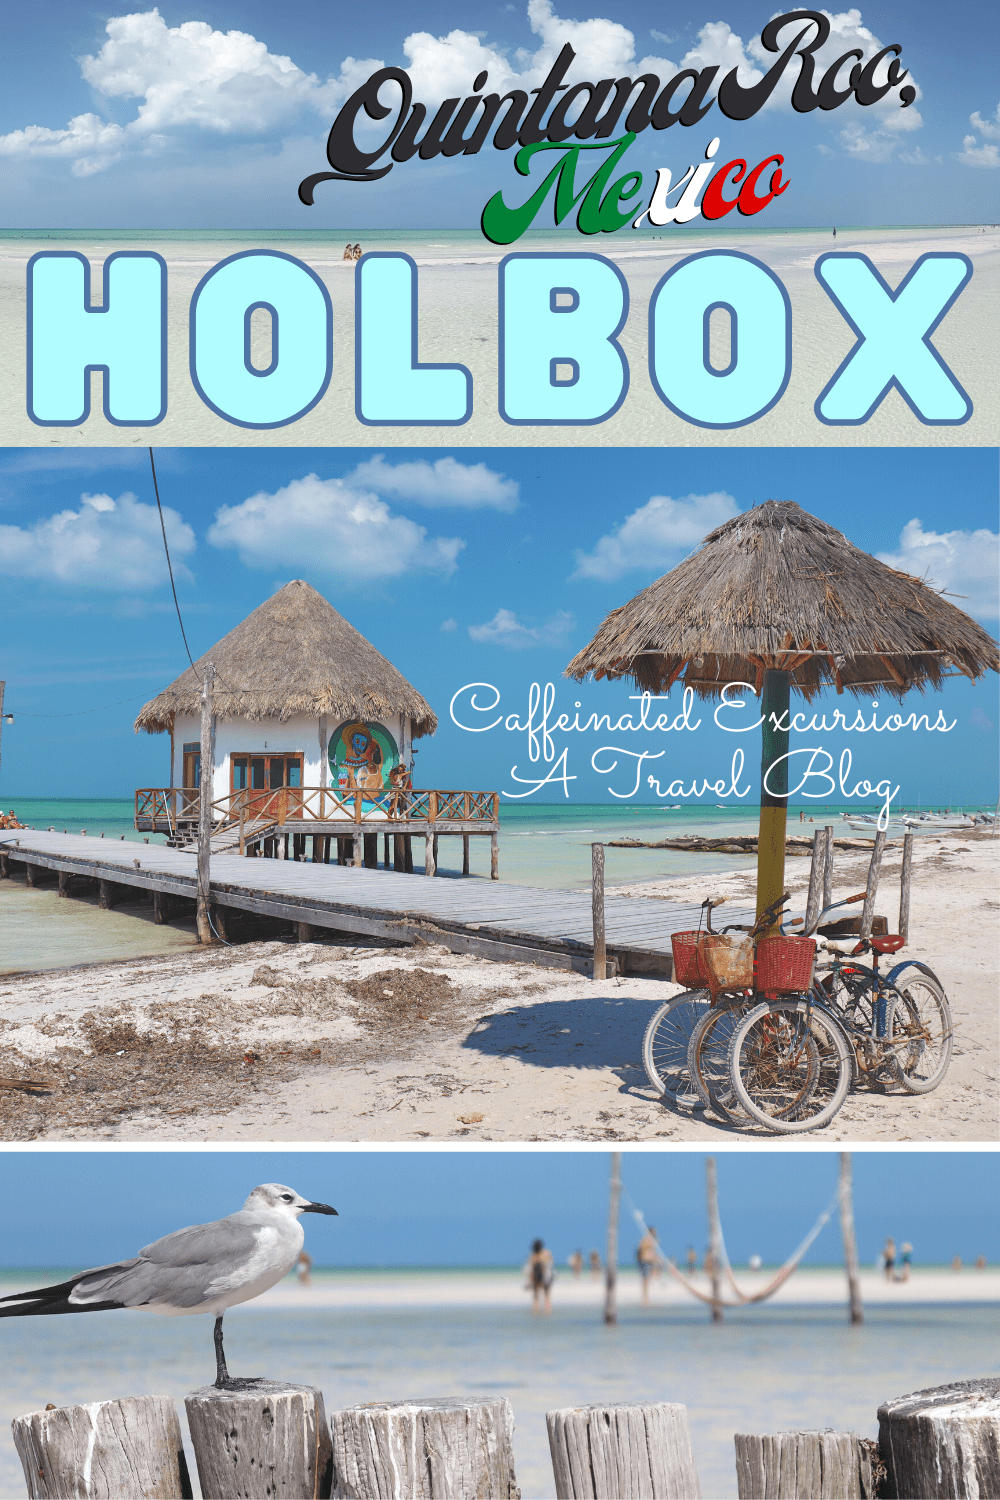 Check out this blog post to learn all about one of my favorite beaches in Mexico, and one that can still be considered a hidden gem! #holbox #islaholbox #playaholbox #holboxisland #islandholbox #holboxbeach #beachholbox #visitholbox #holboxmexico #mexicoholbox #quintanaroo #holboxquintanaroo #quintanarooholbox #beachesmexico #mexicobeaches #bestbeachesmexico #mexicobestbeaches #hiddengemsmexico #mexicohiddengems #visitmexico #bestofmexico #visitquintanaroo #travelblog #travelblogger